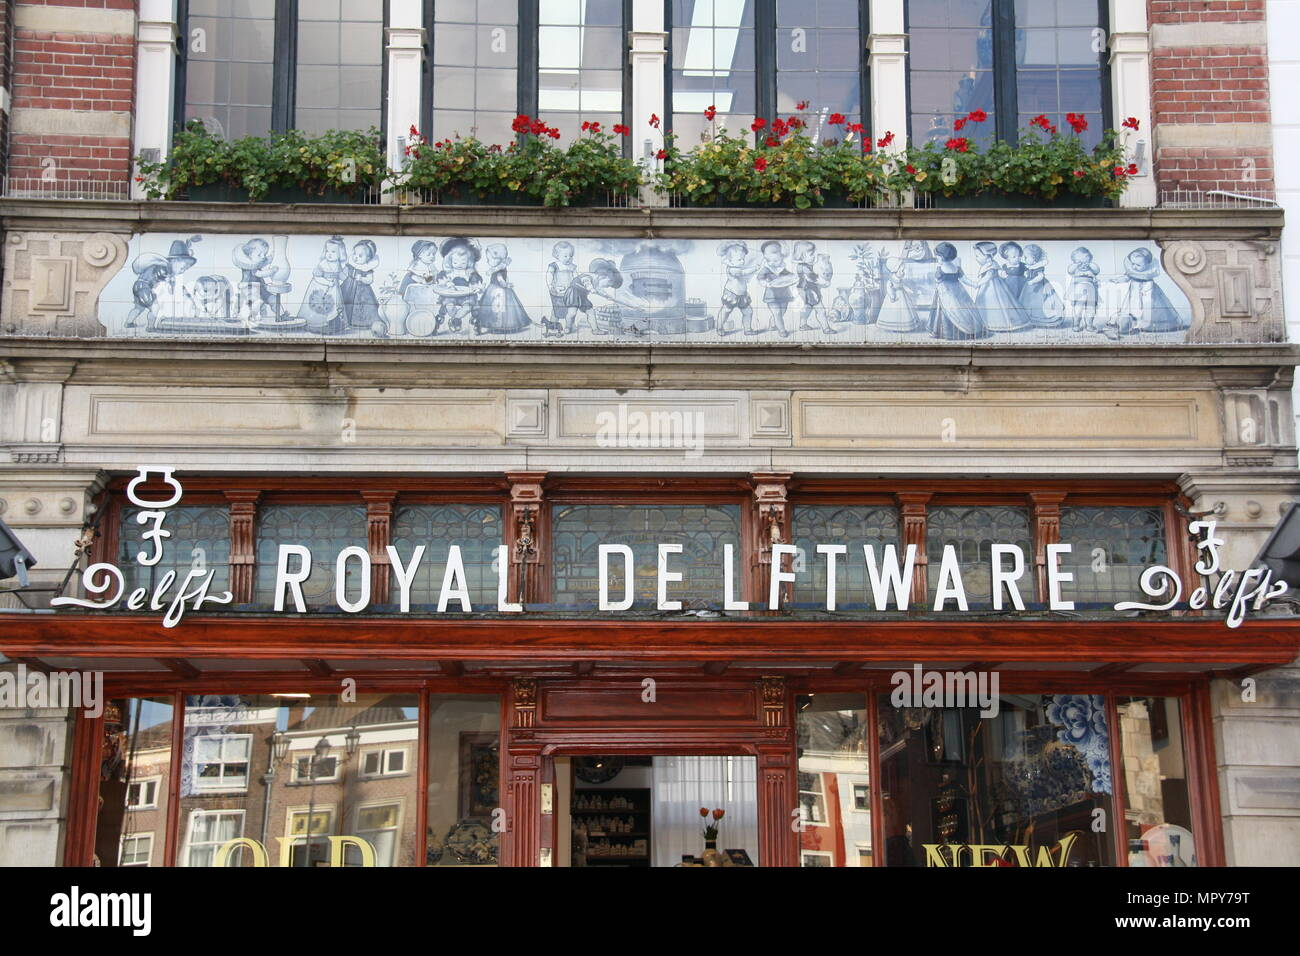 A shop selling delftware dutch pottery and souvenirs in Delft, the Netherlands. - Stock Image